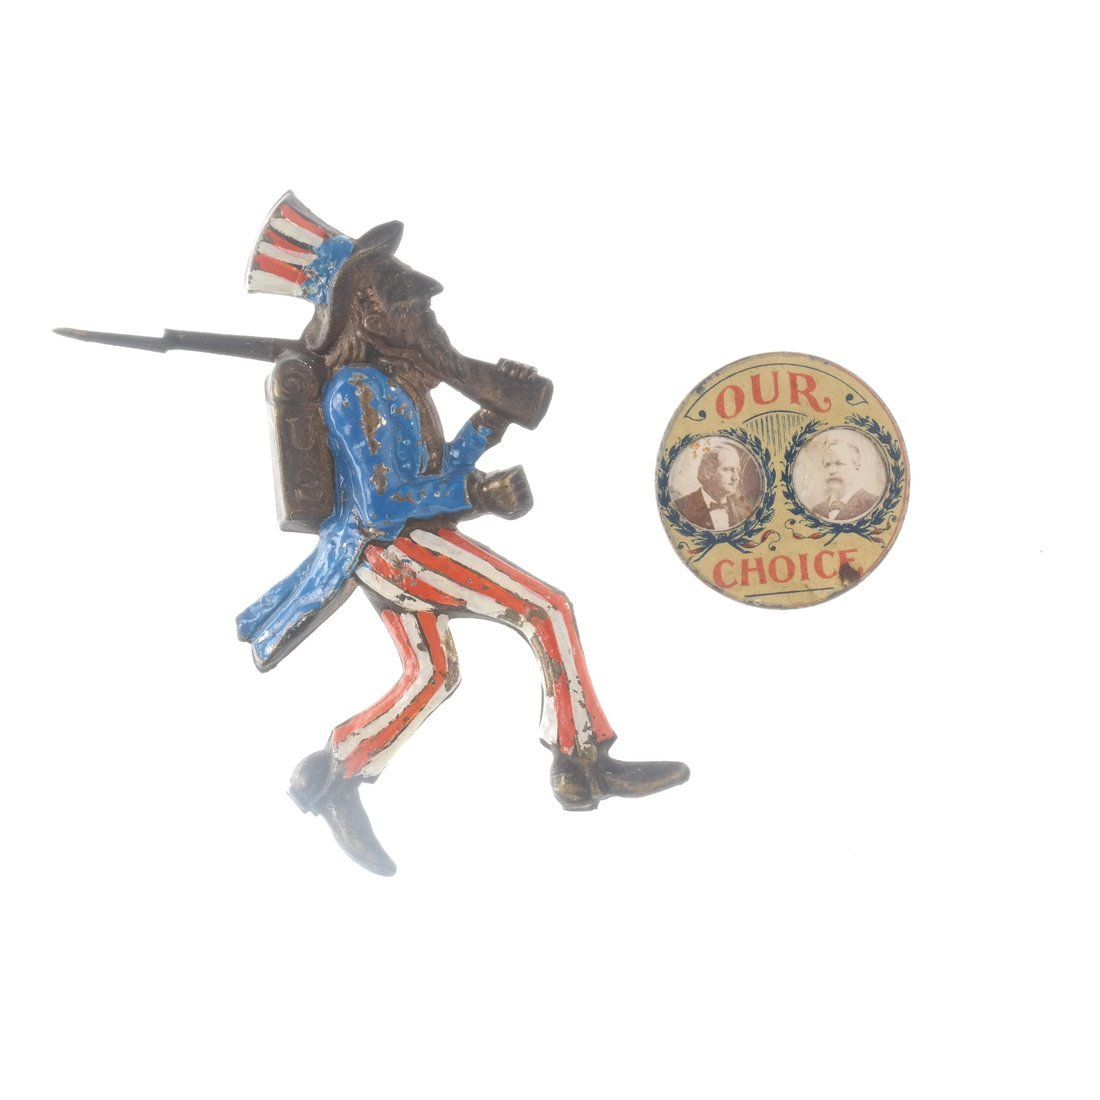 Two 1896 Presidential Campaign Pins